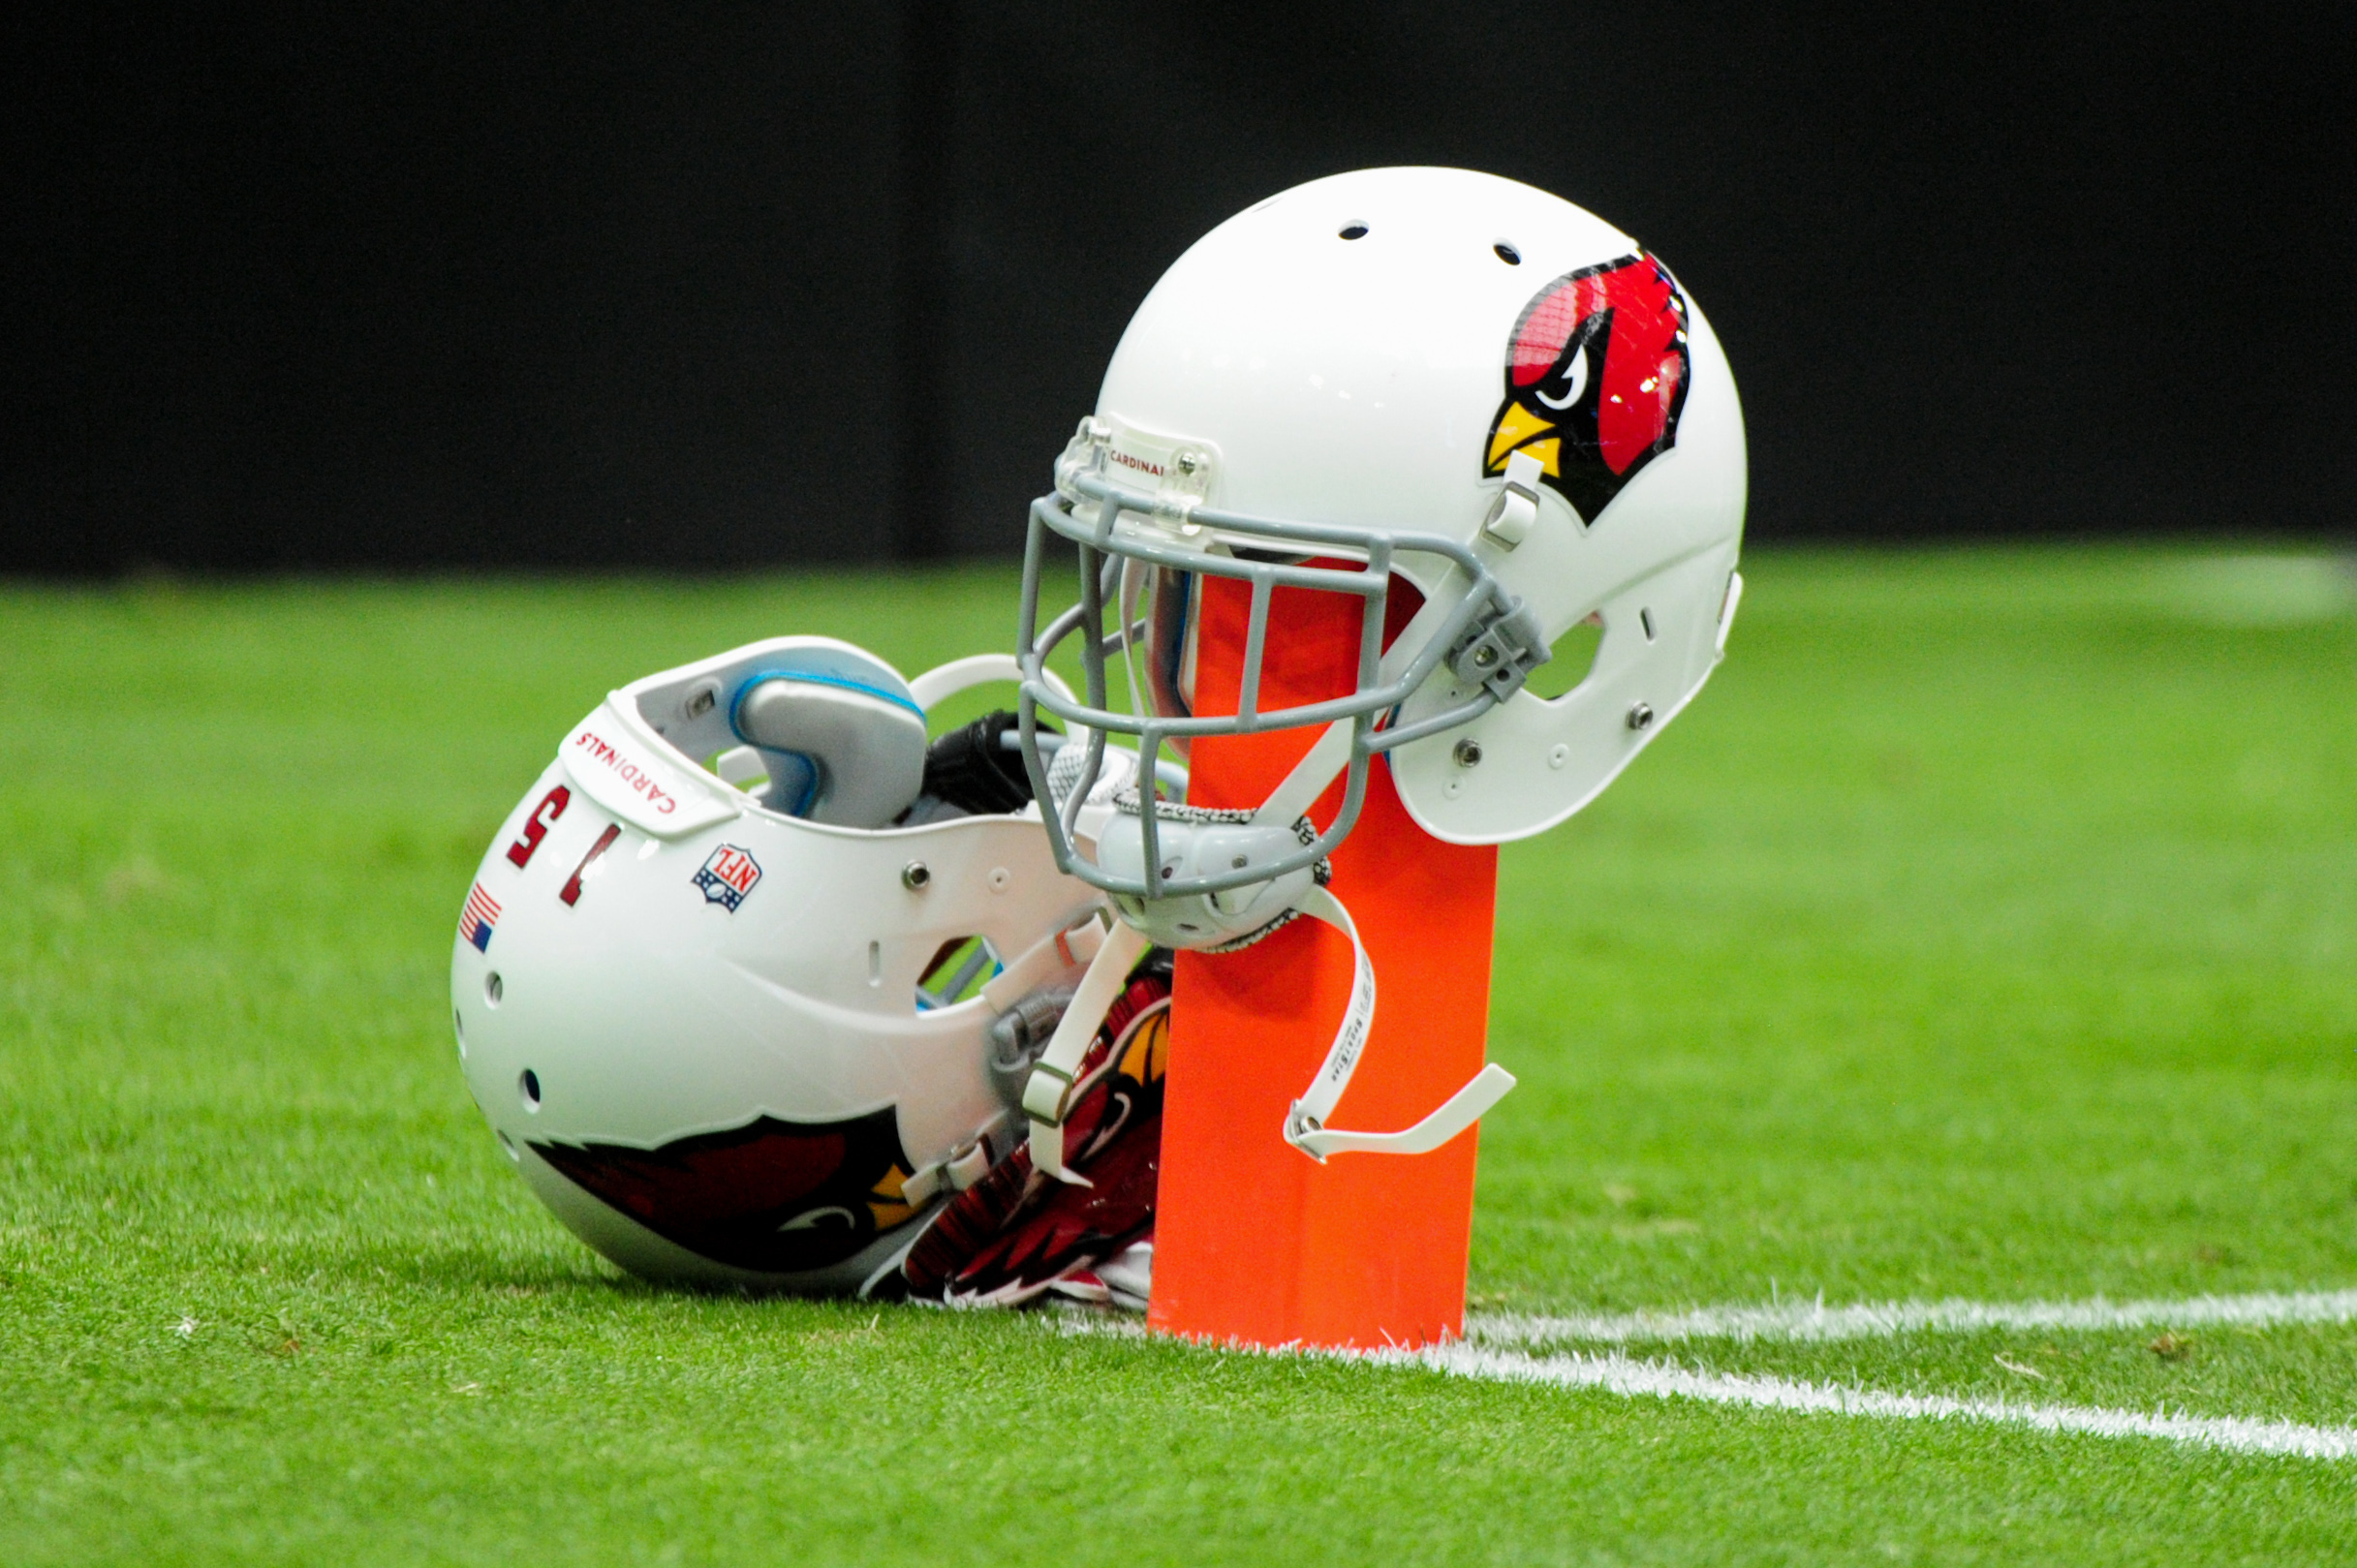 8728257-nfl-arizona-cardinals-training-camp